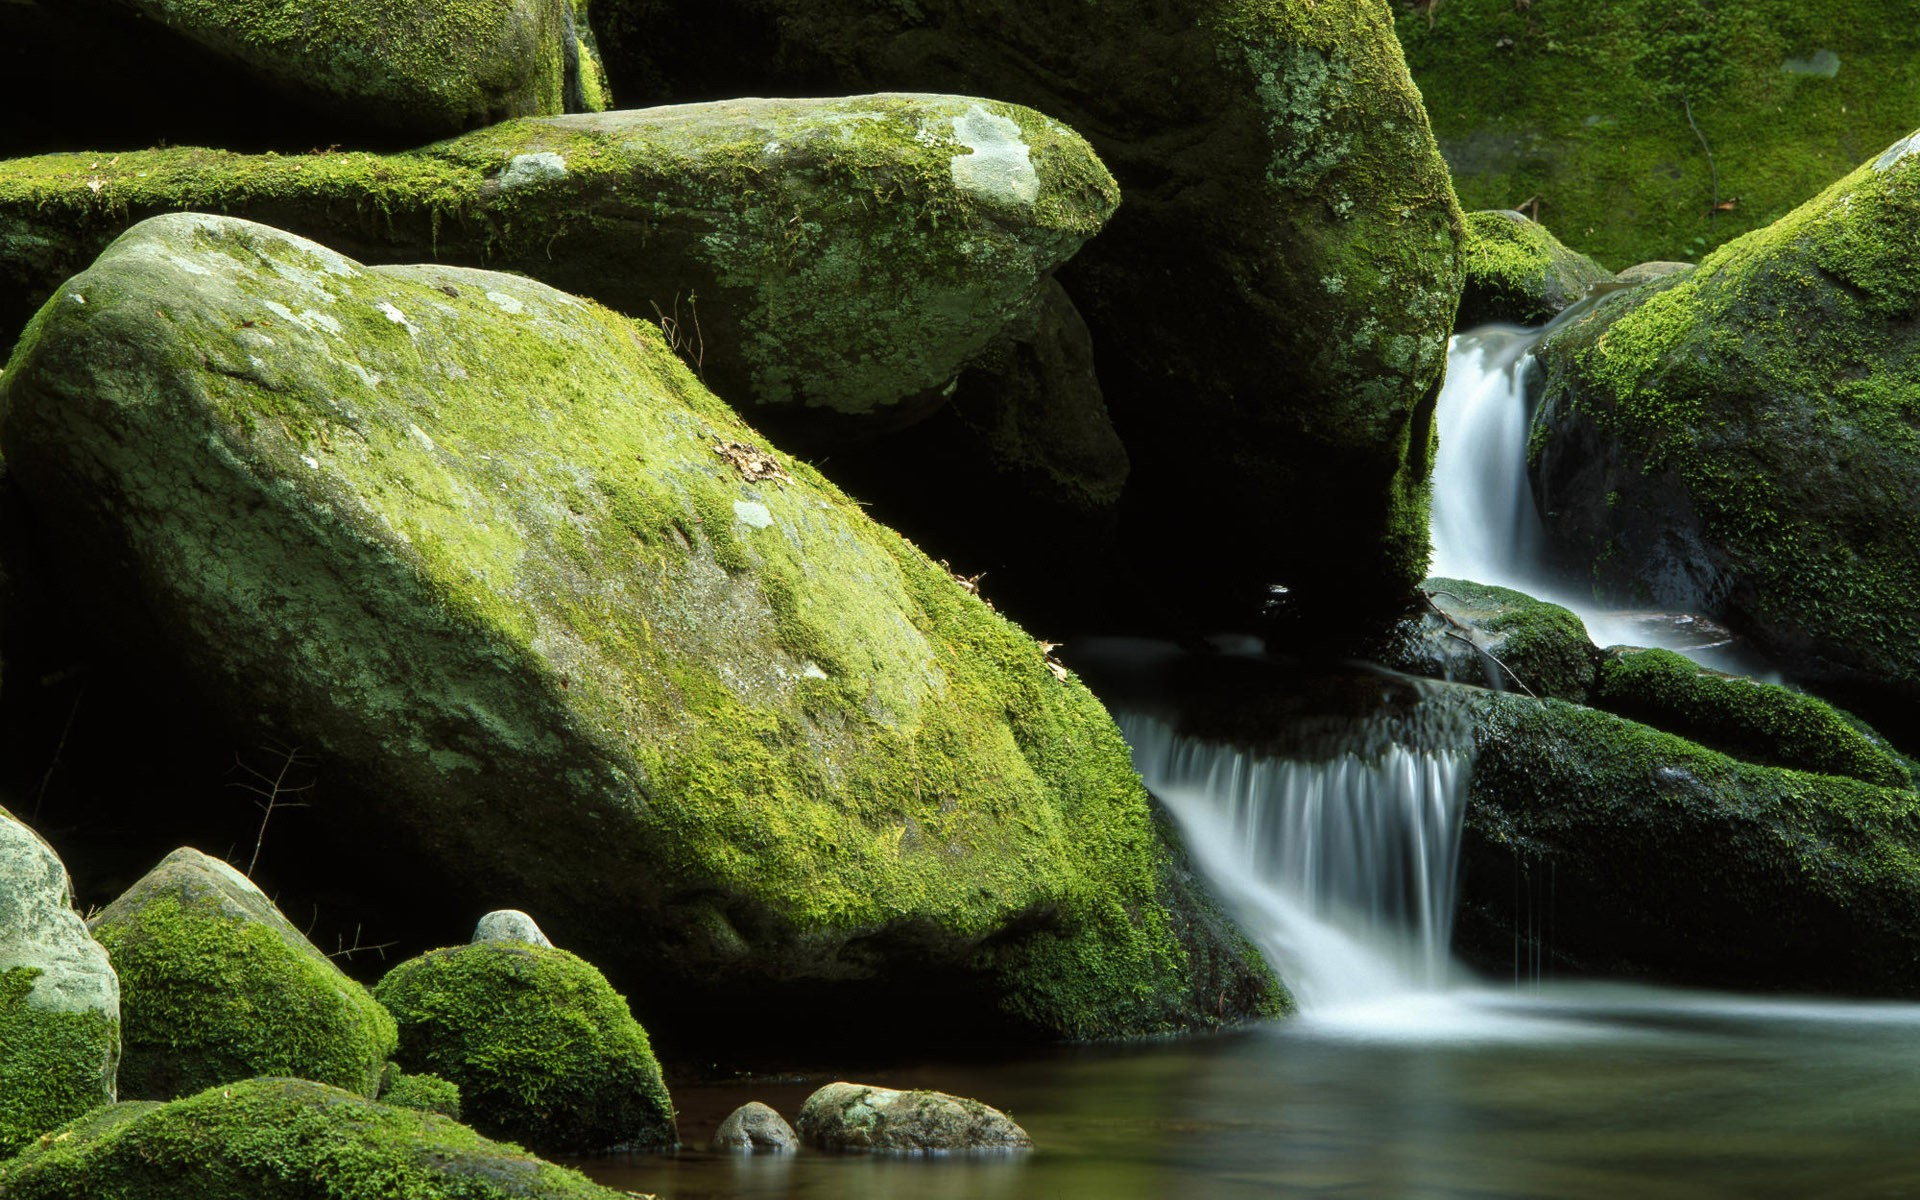 3d Waterfall Wallpaper For Mobile Nature Landscape Waterfall Rock Stones Long Exposure